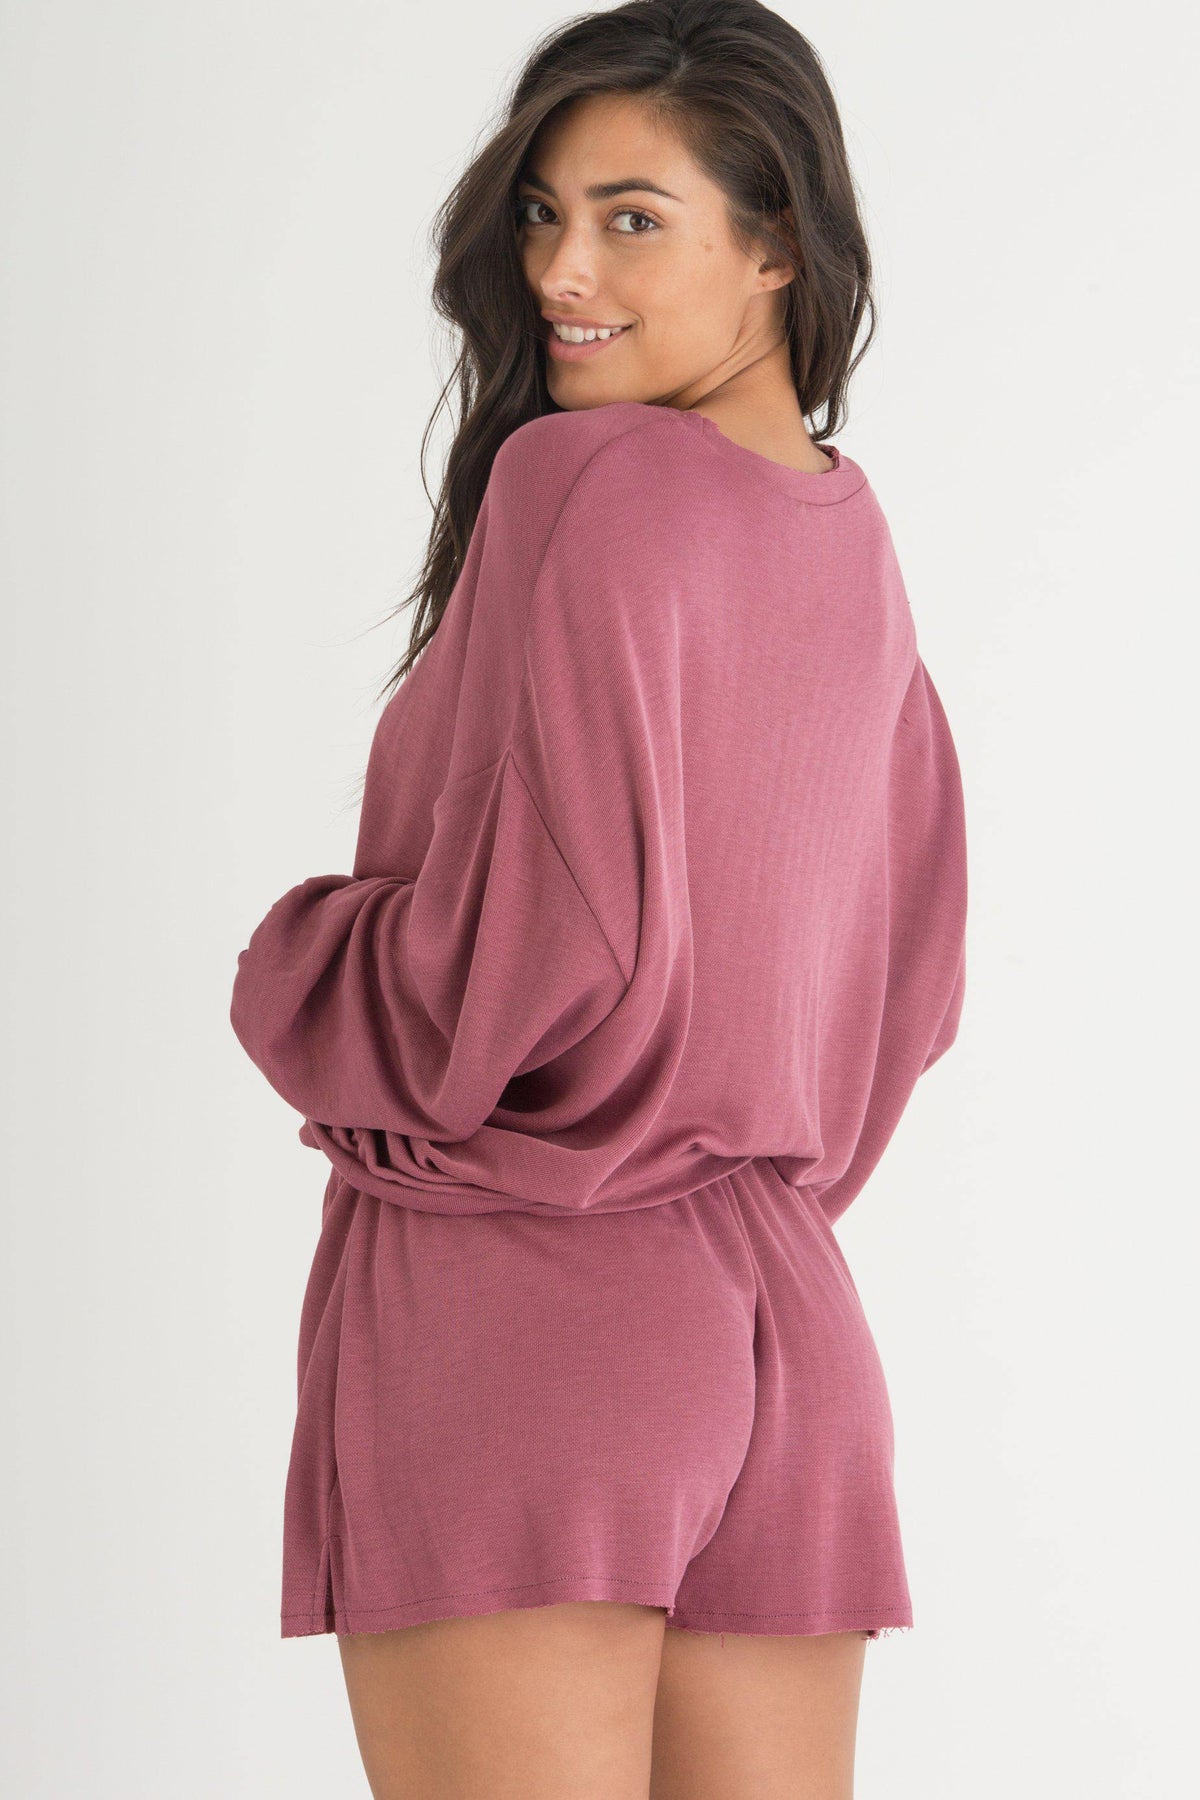 Fall Forever Lounge Short-Loungewear-Honeydew Intimates-Radiant-Small-Honeydew Intimates